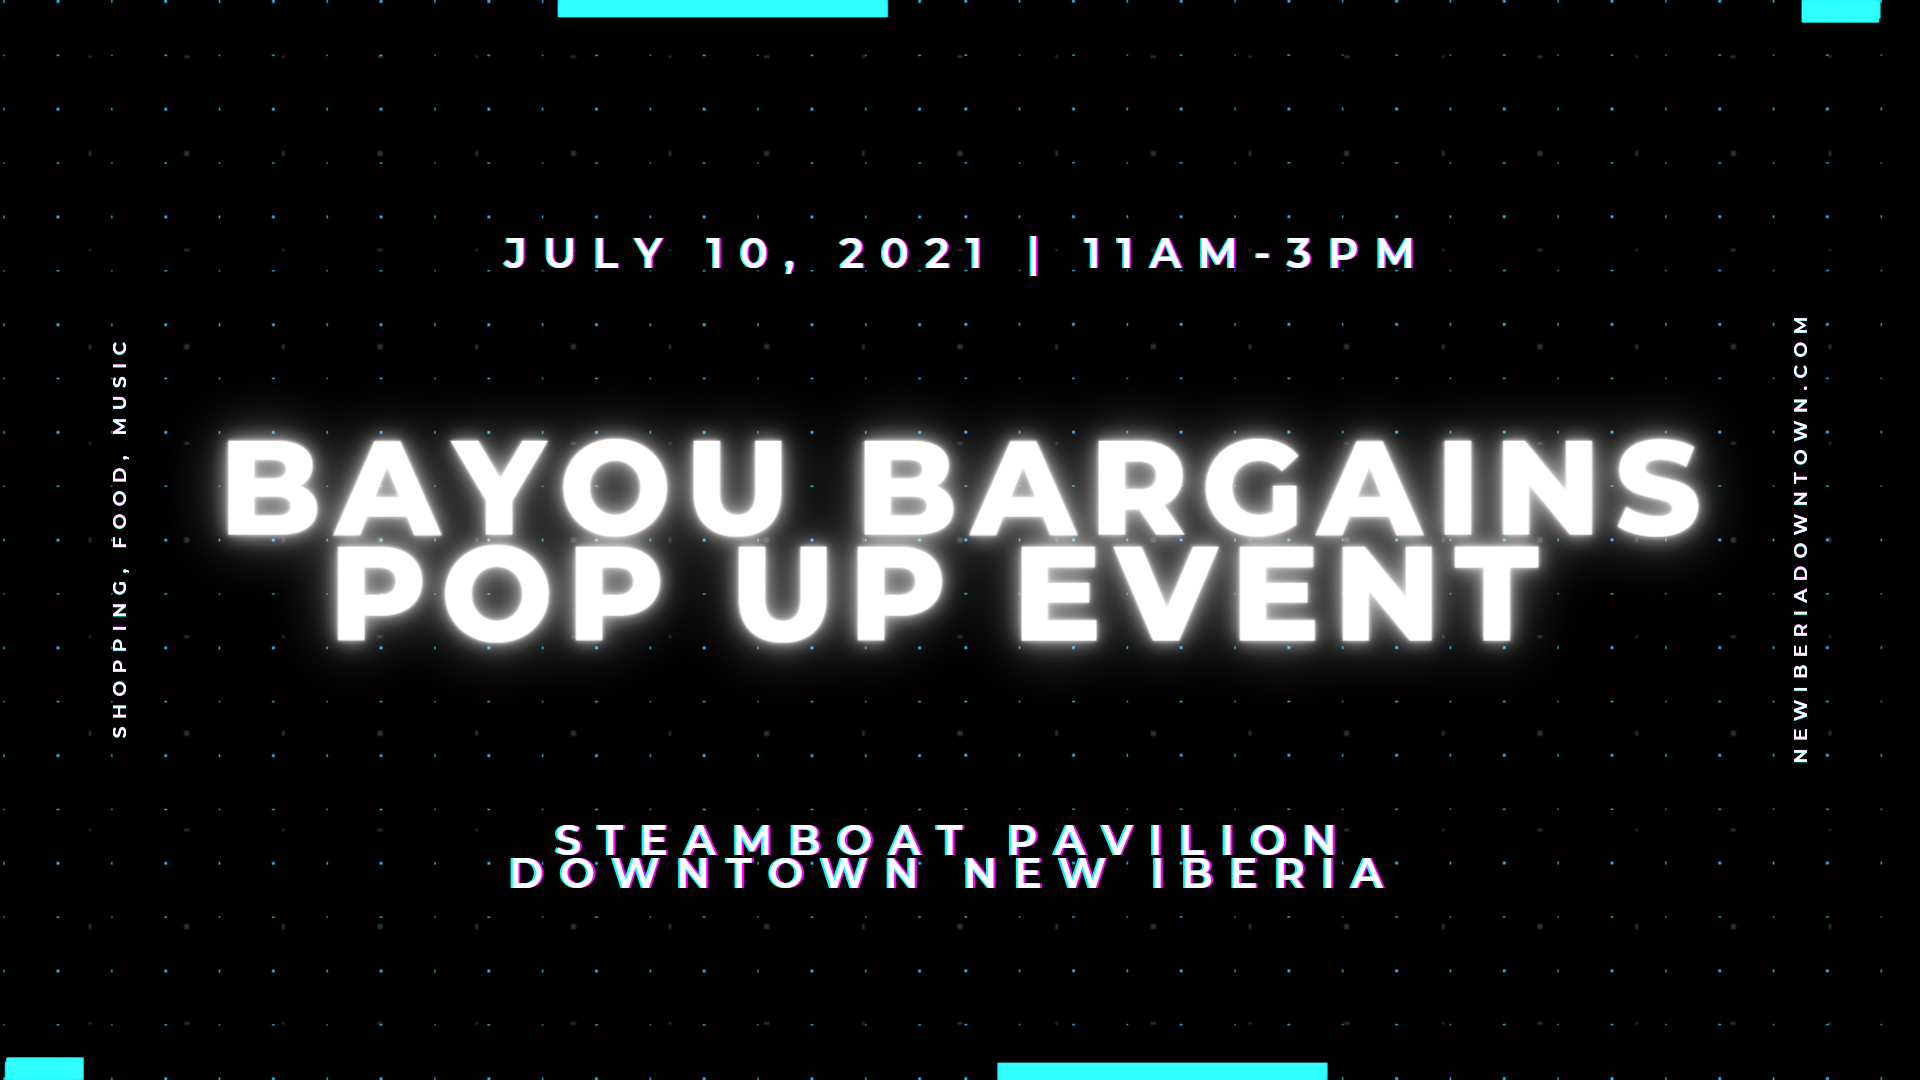 New Iberia Downtown Alliance presents Bayou Bargains Pop Up Event July 10